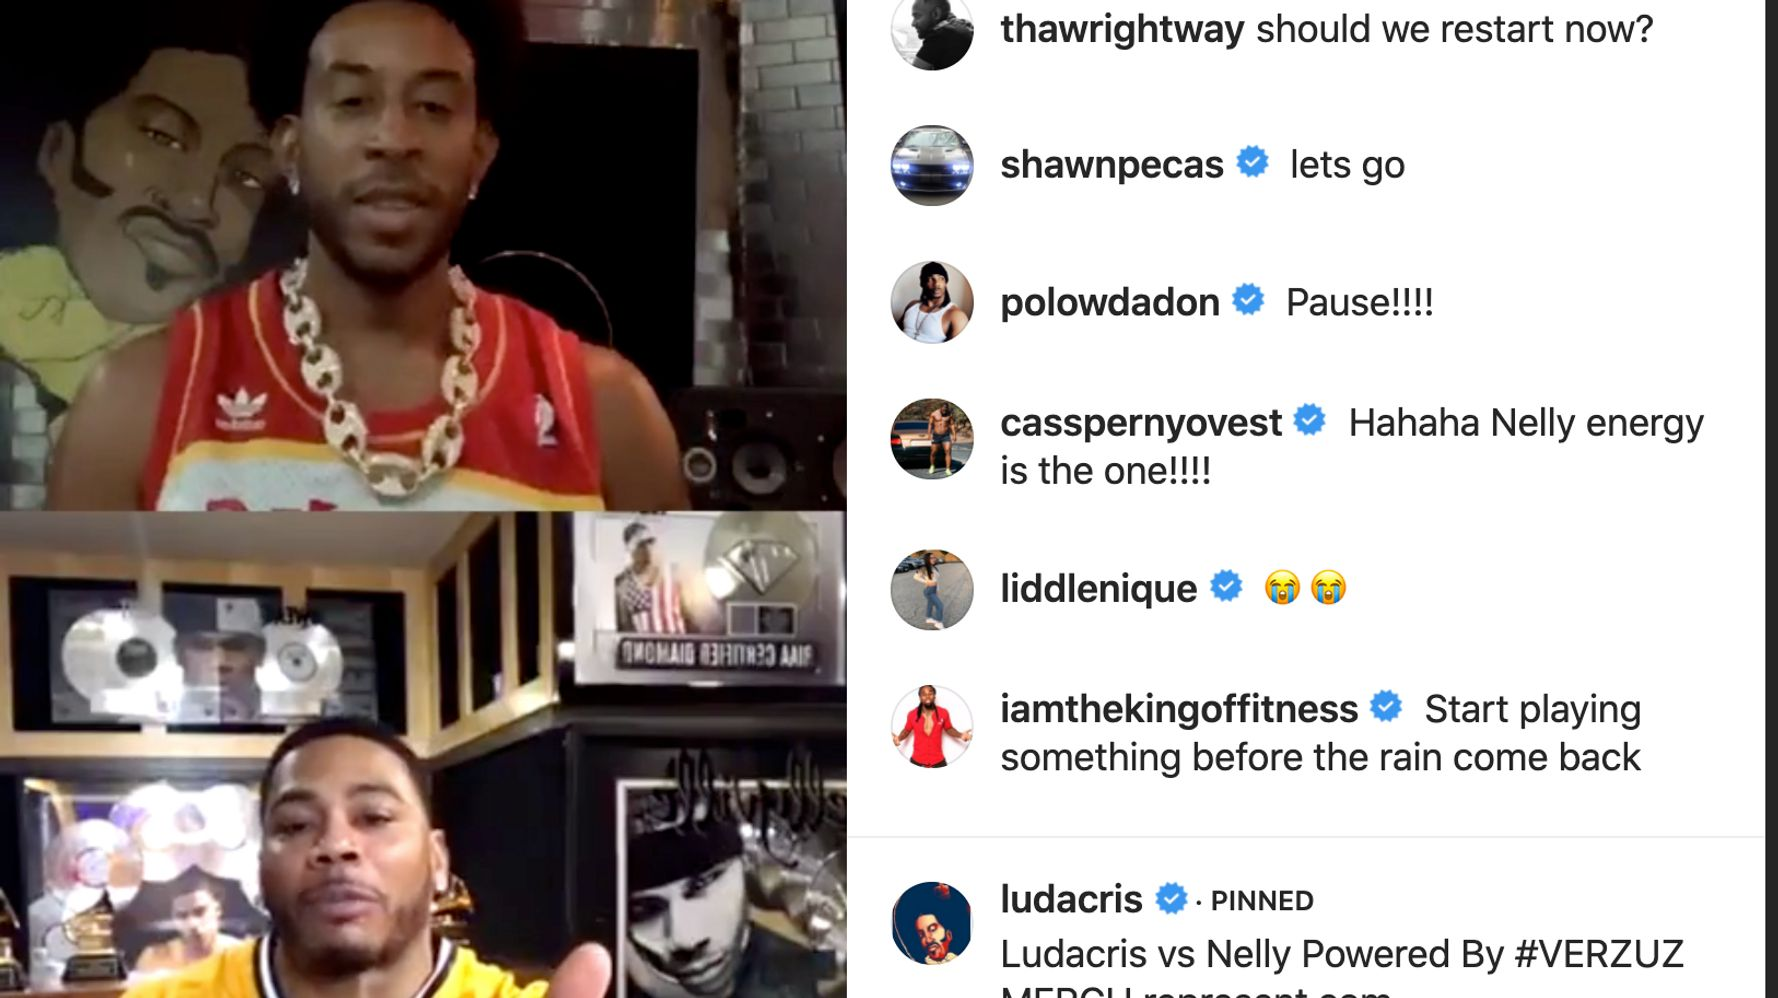 Ludacris And Nelly Battle It Out On Instagram Live | HuffPost